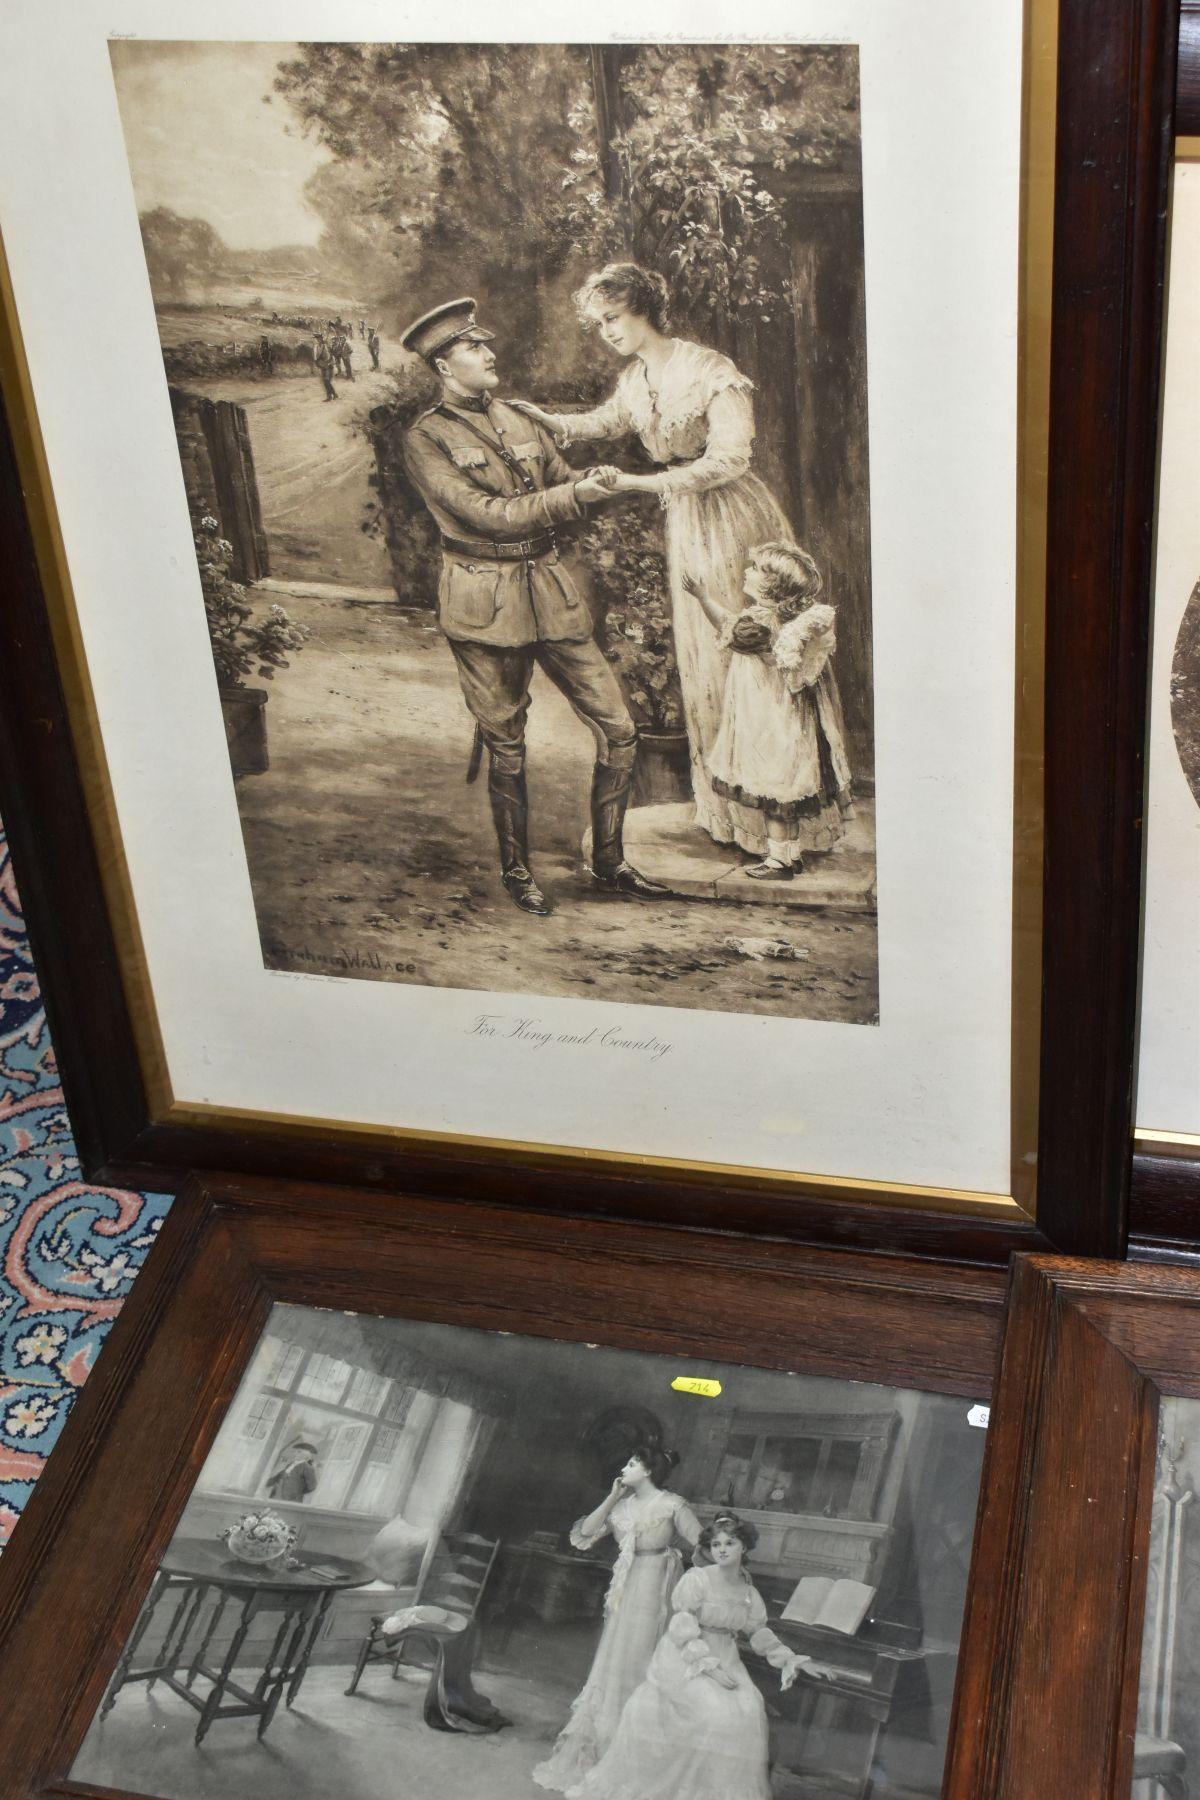 EARLY 20TH CENTURY OAK FRAMED MONOCHROME PRINTS, comprising 'For King and Country' by Graham - Image 3 of 4